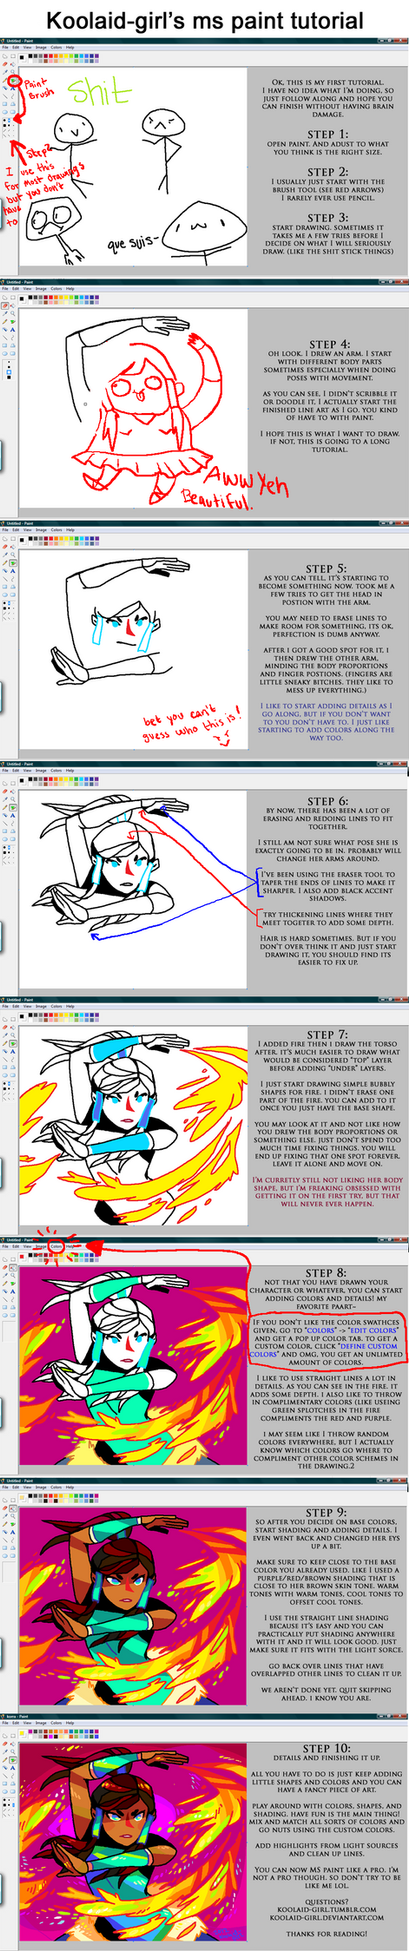 ms paint tutorial by Koolaid-Girl